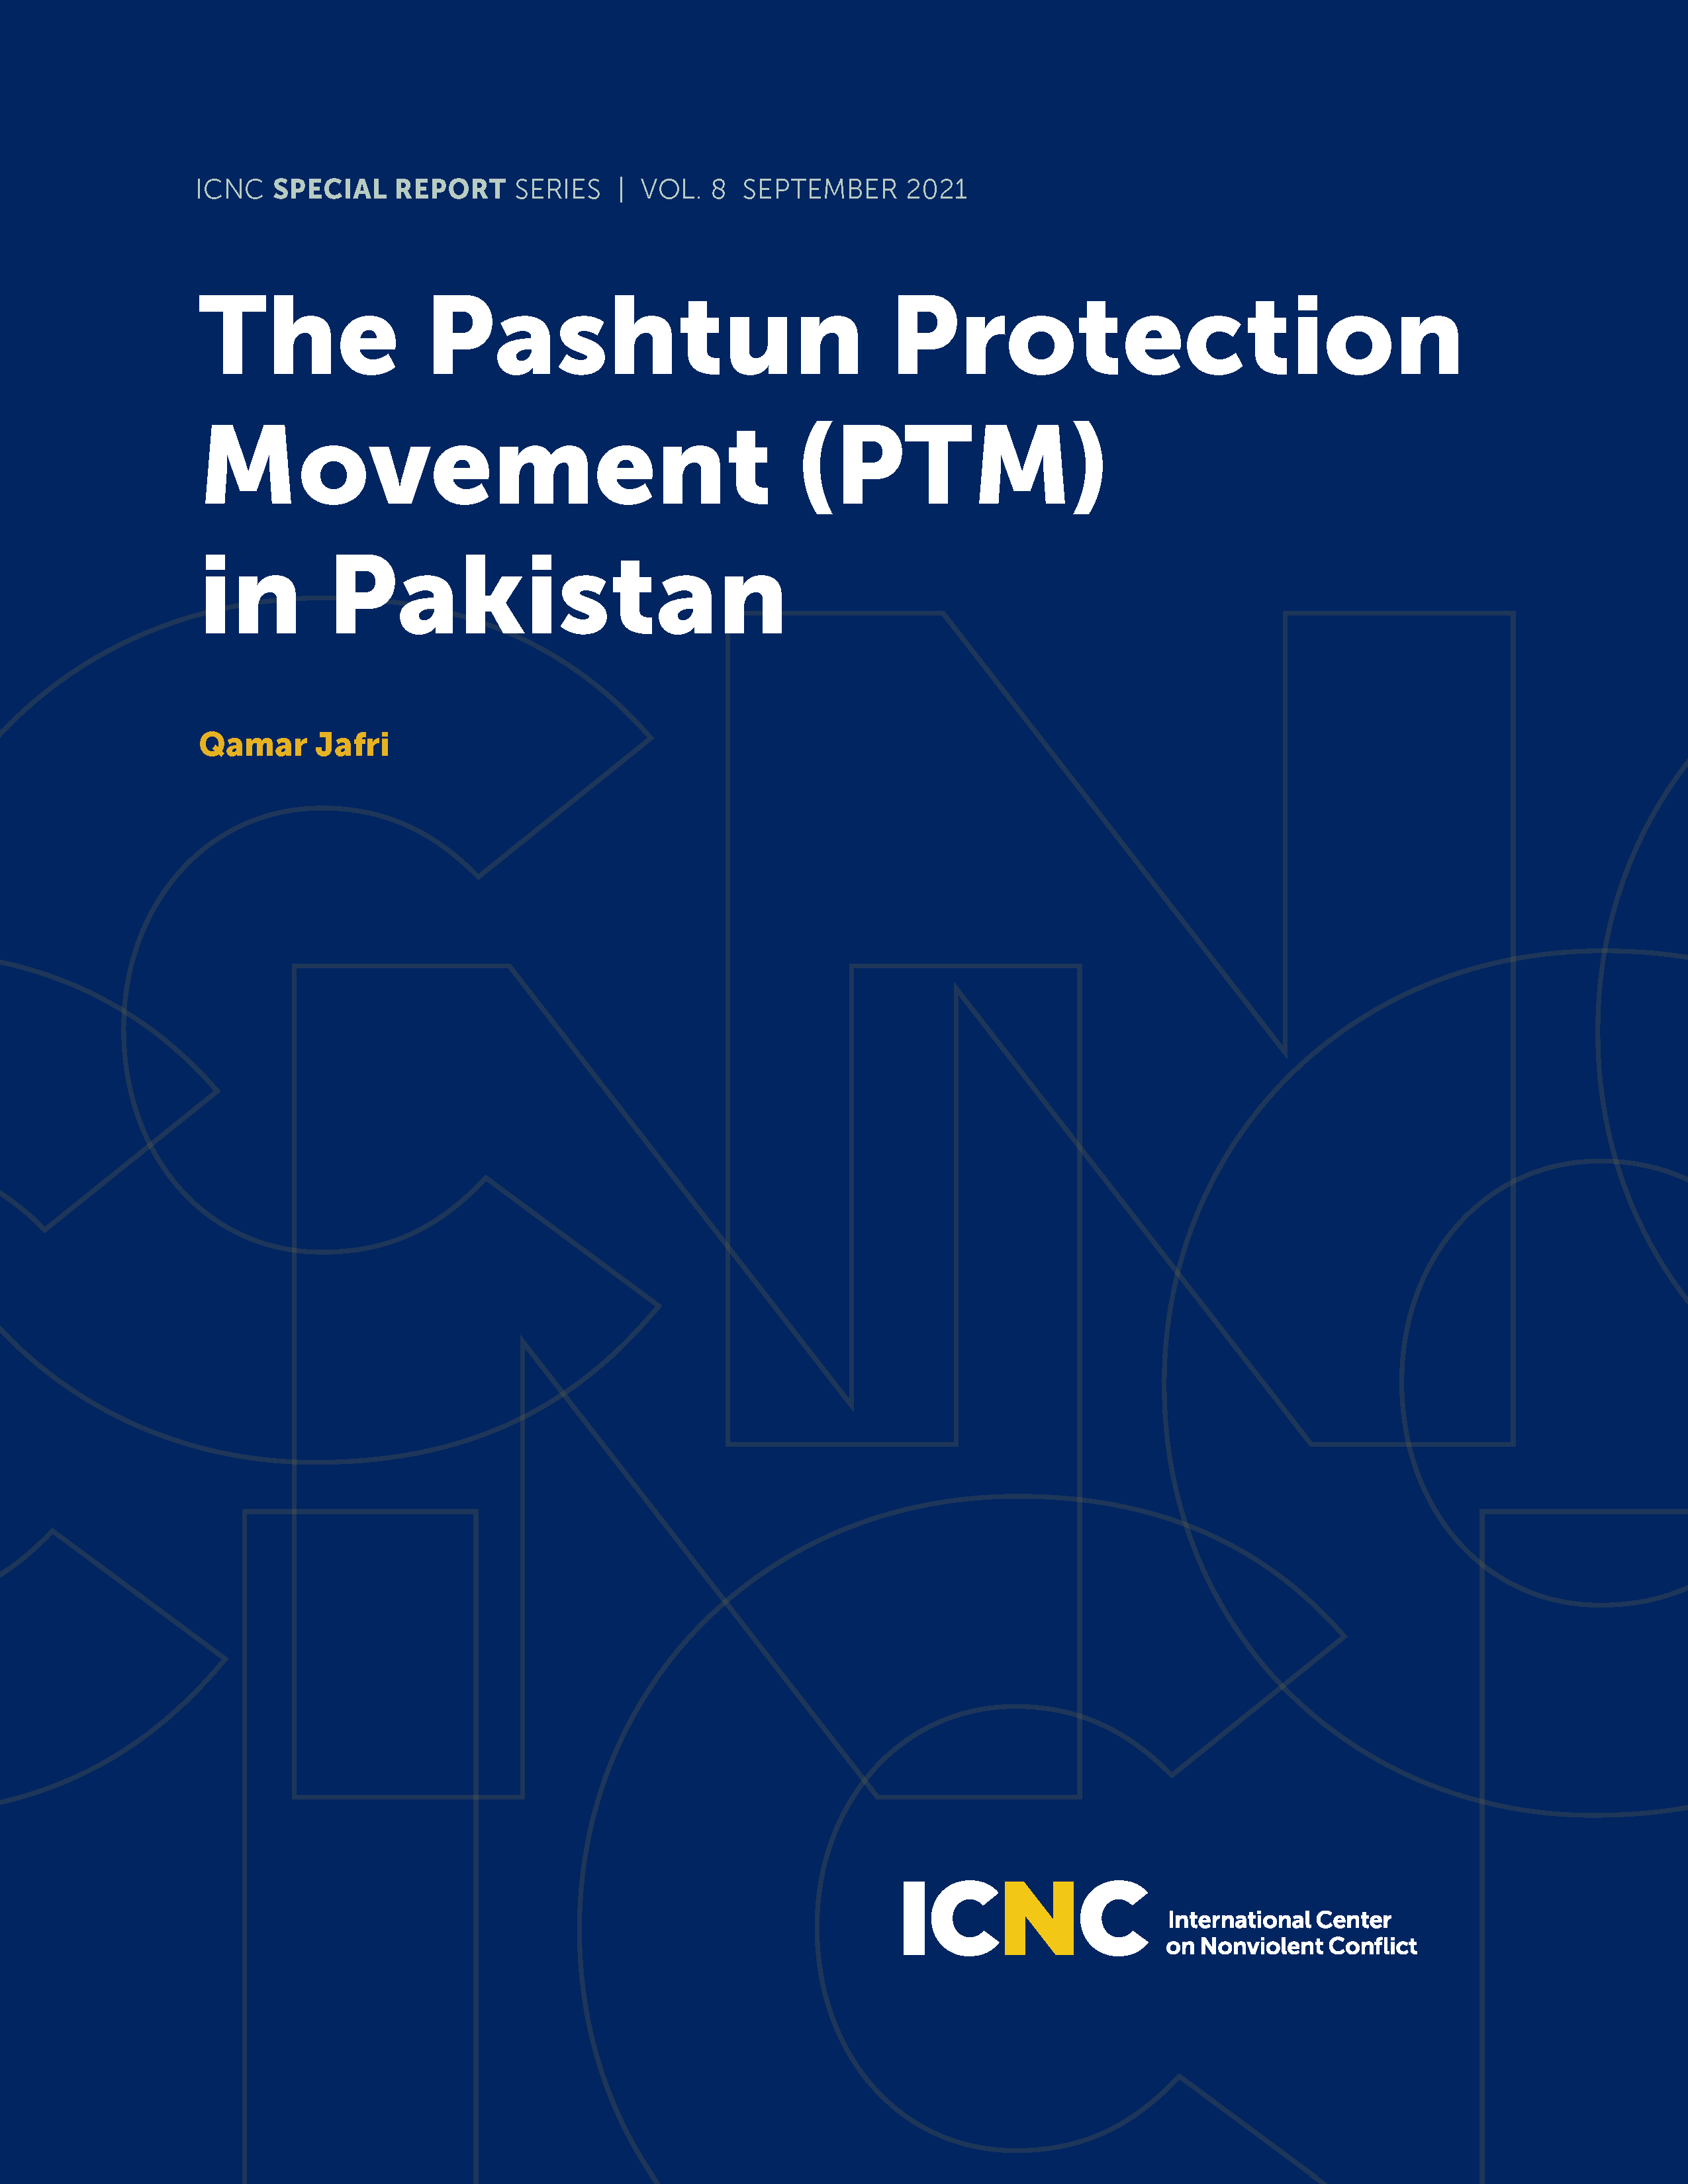 The Pashtun Protection Movement (PTM) in Pakistan